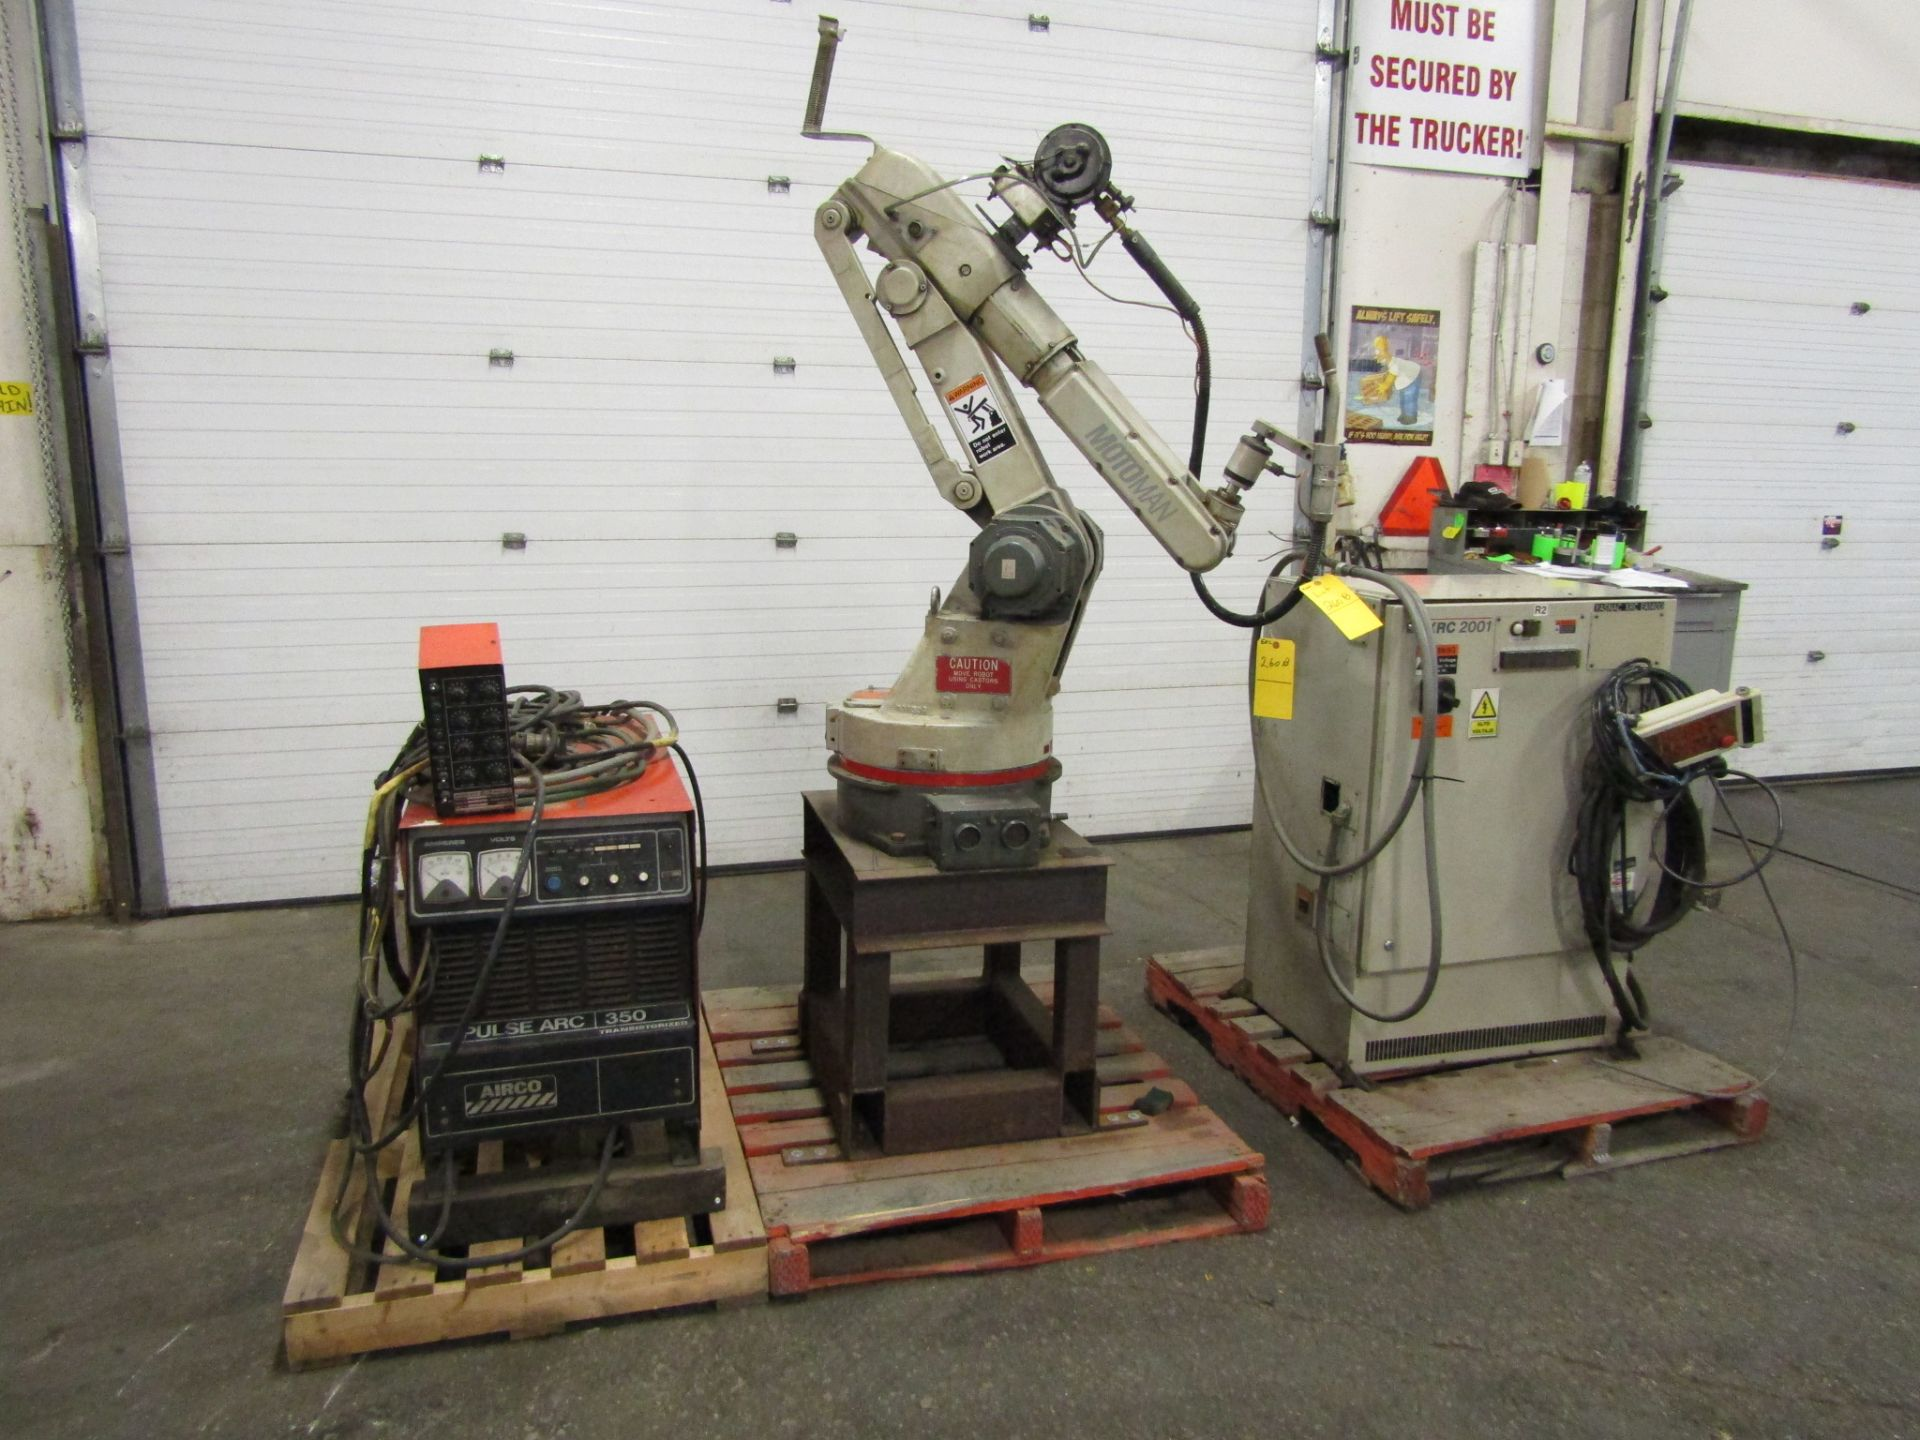 Lot 269 - 2004 Motoman UP6 Welding Robot System with XRC 2001 controller with teach pendant & Airco 350 Amp